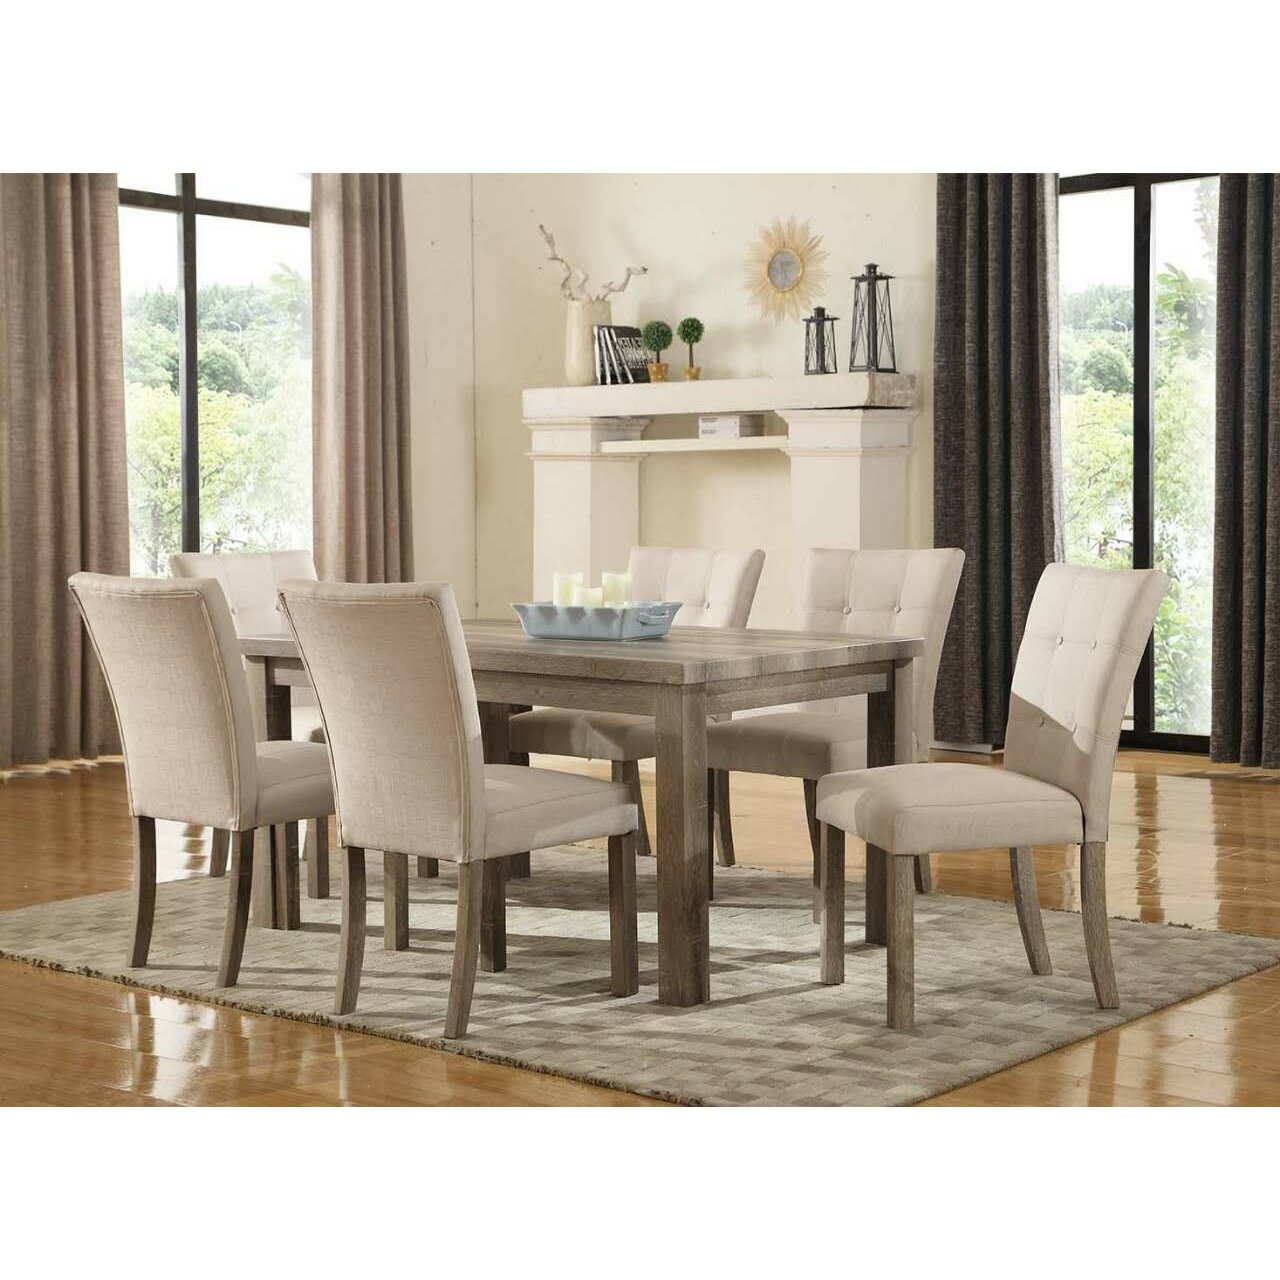 urban accents furniture. urban accents furniture 7 piece dining set